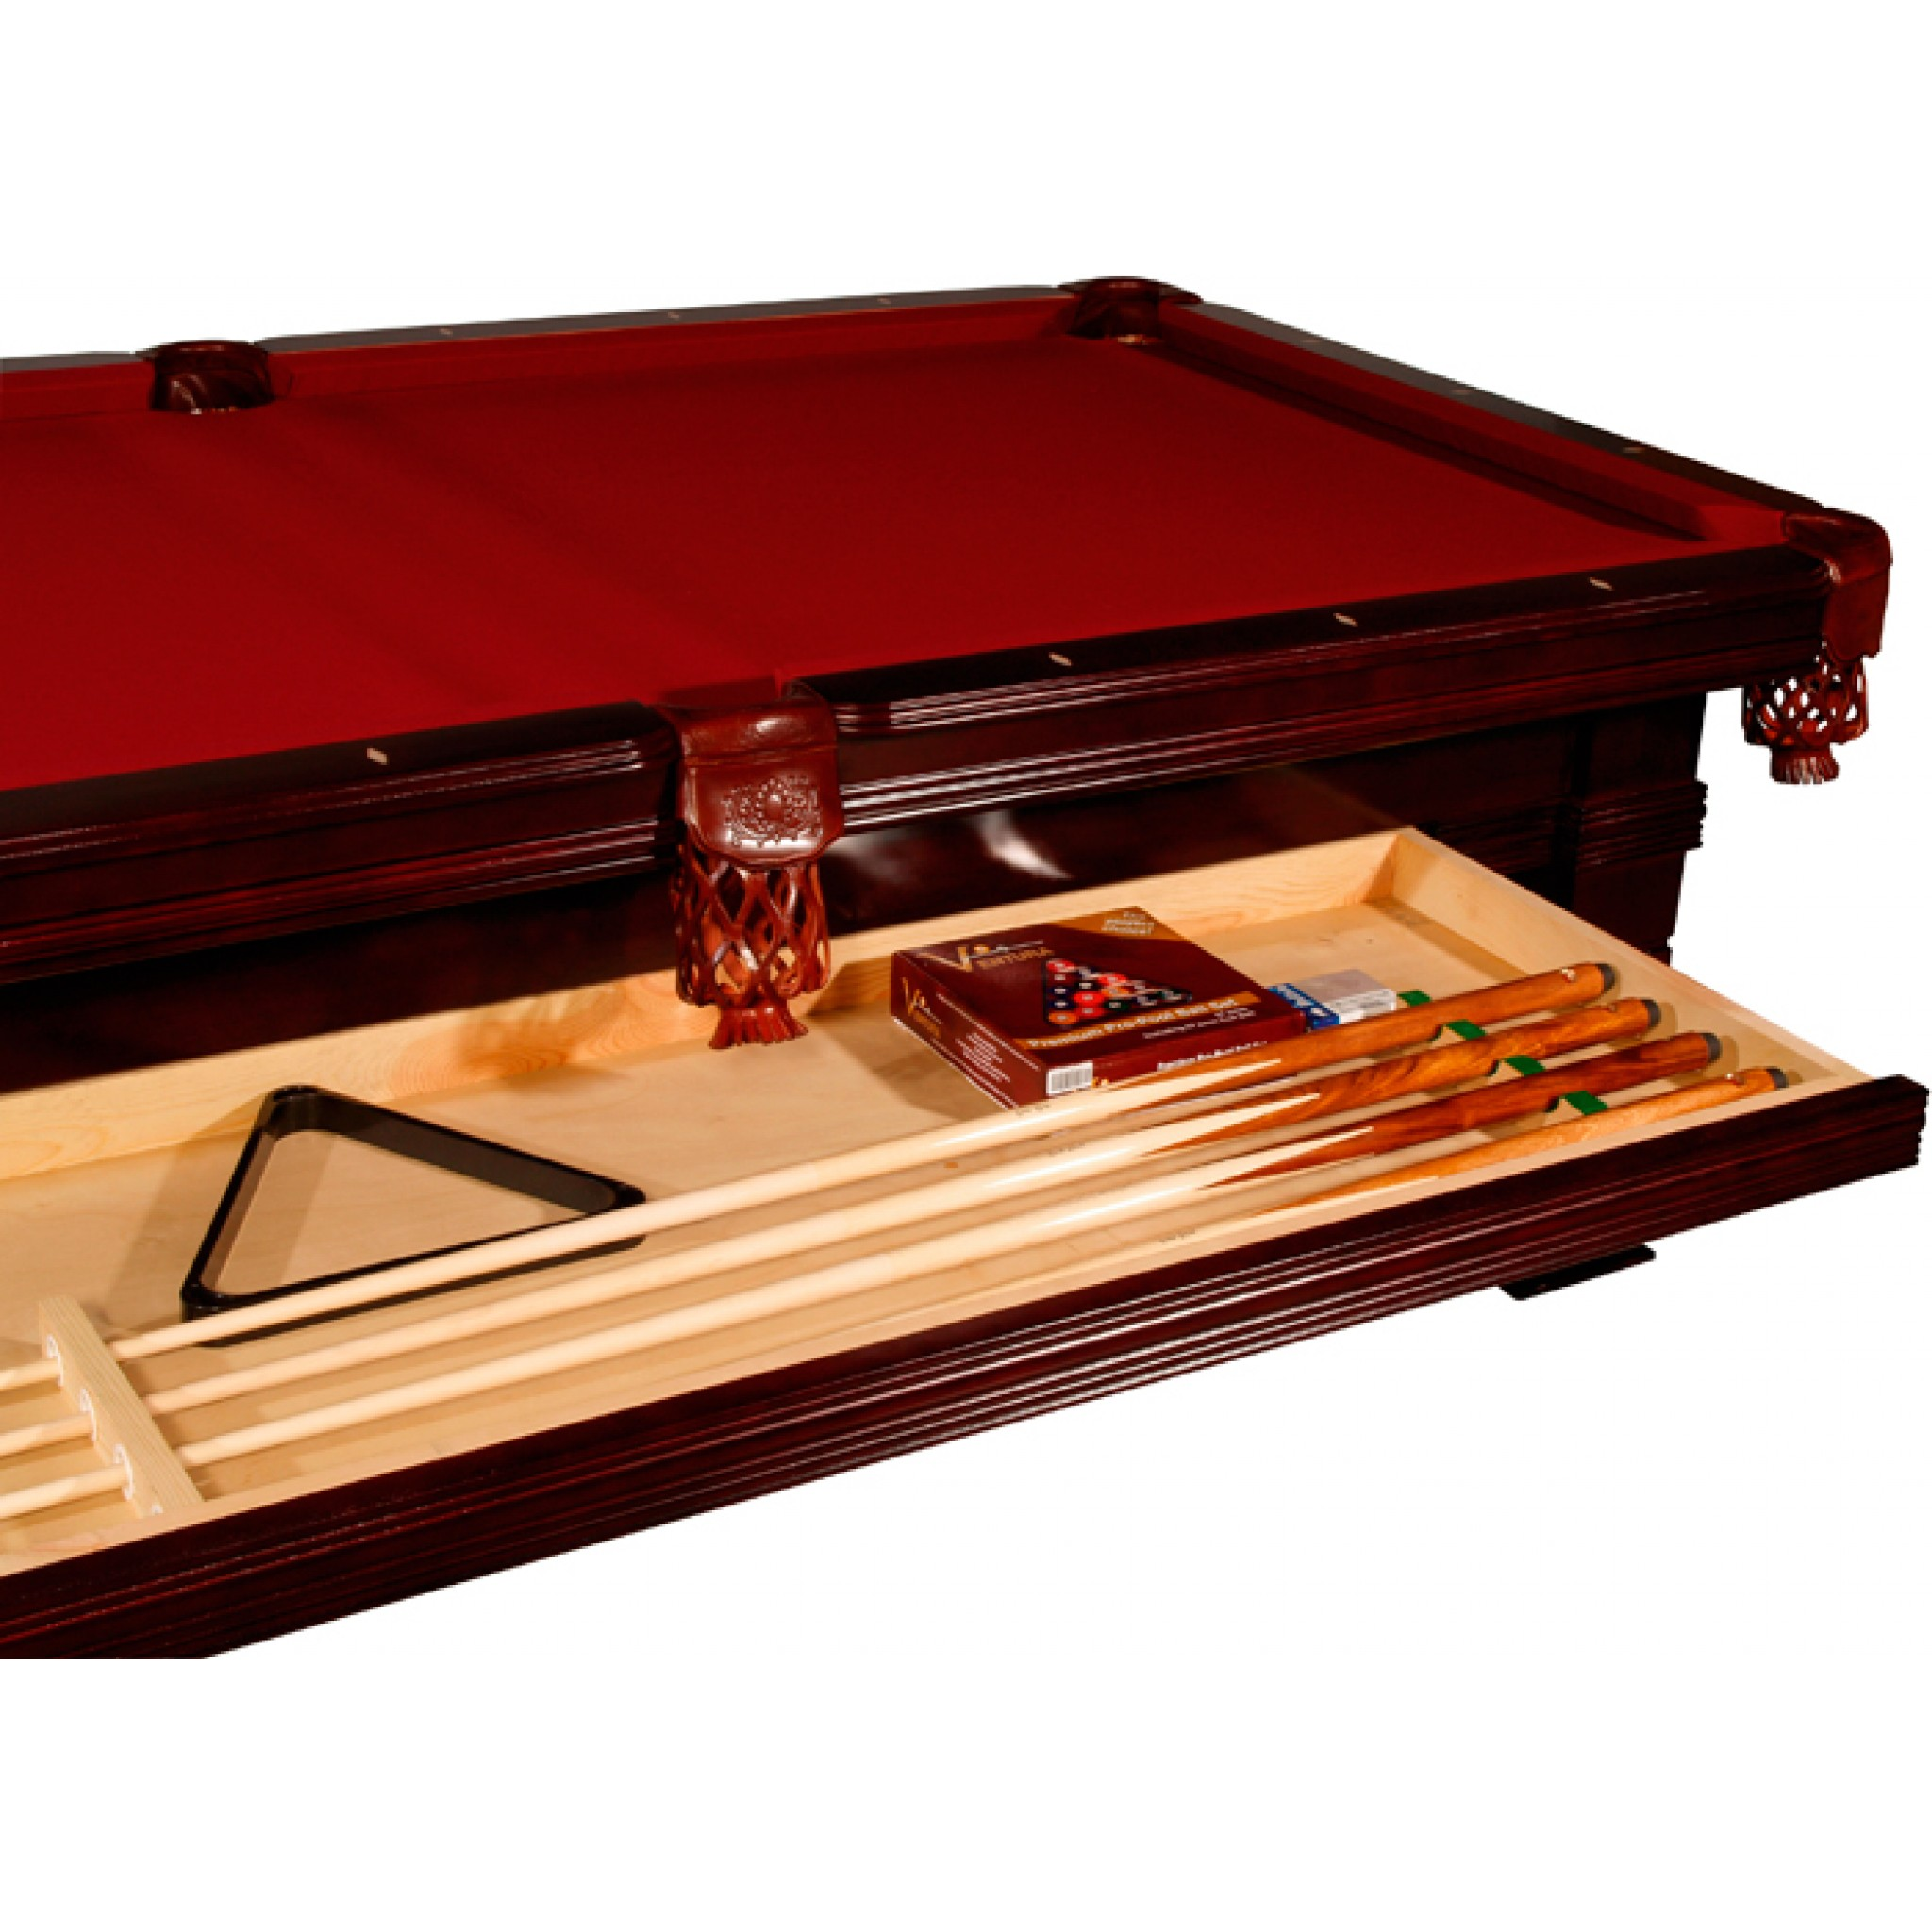 Brunswick 8ft Pool Table The timeless design of the Buffalo Riva pool table manages to convey ...